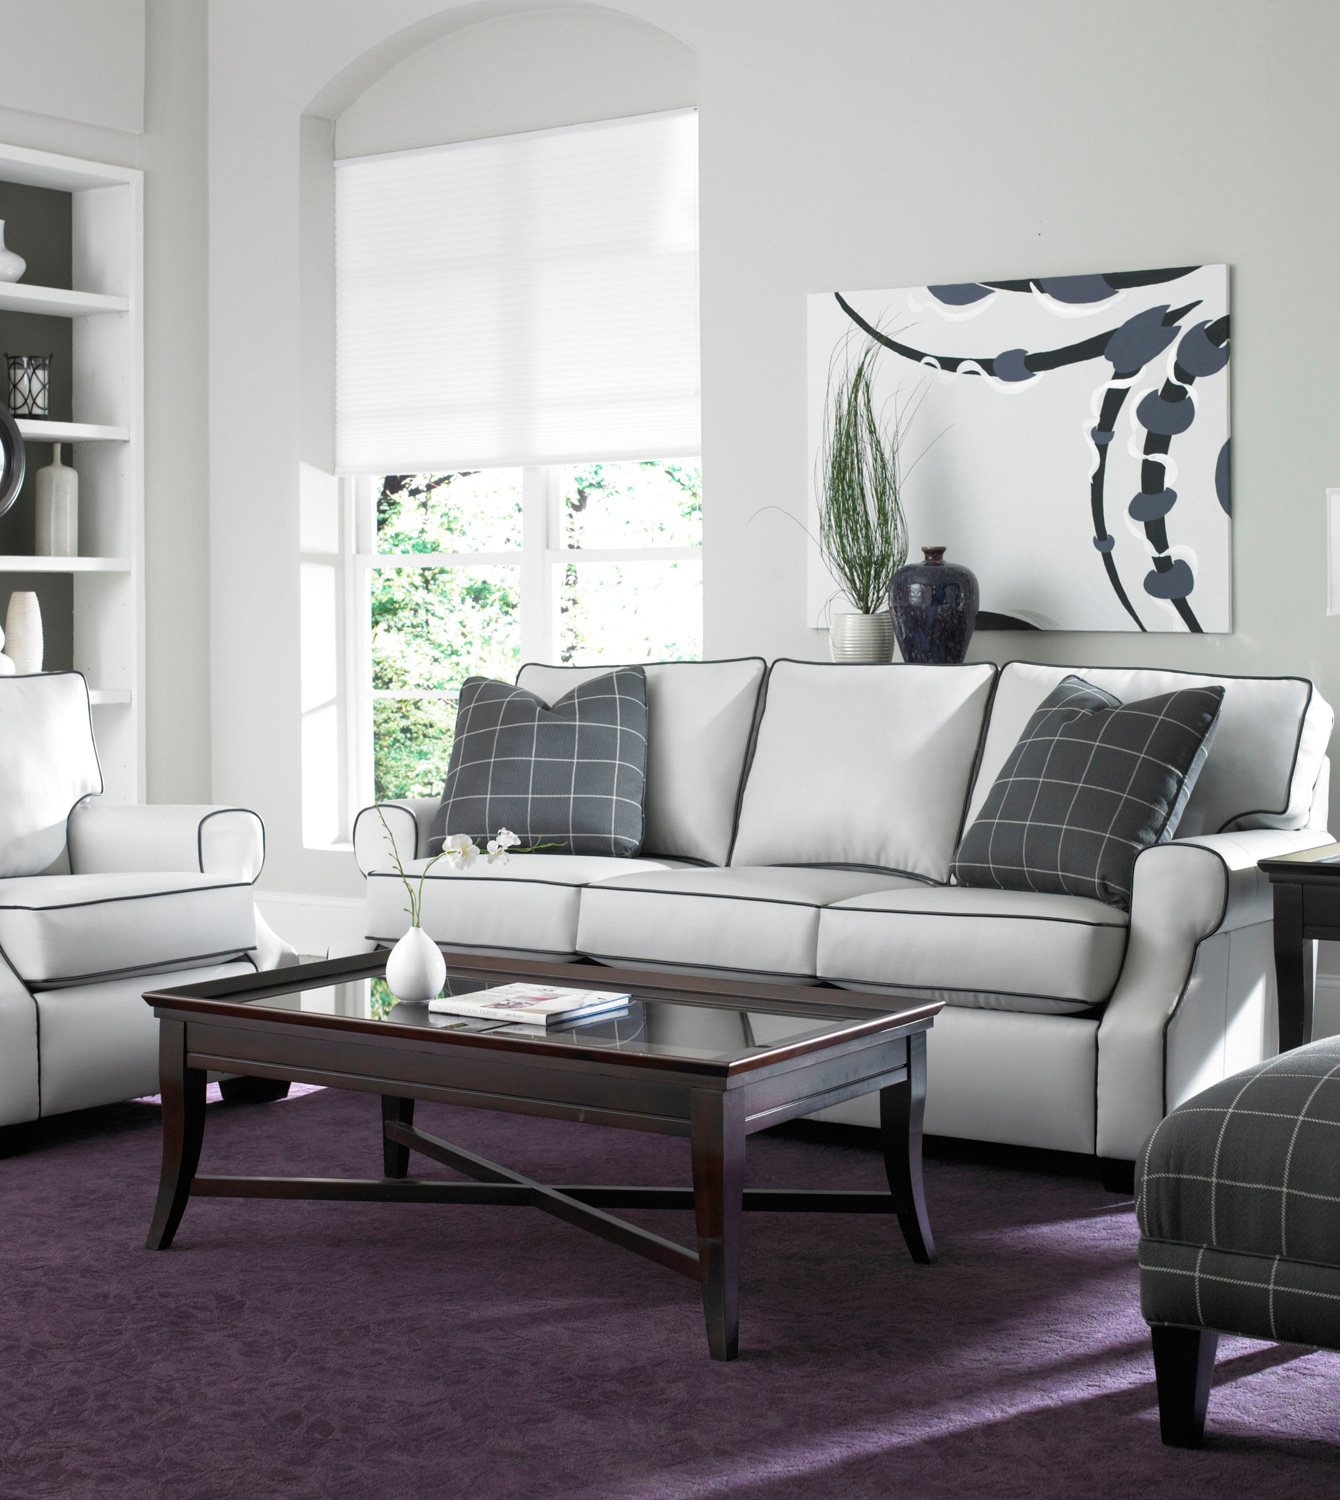 Kingston Sofa | Broyhill | Home Gallery Stores | Living Room ...